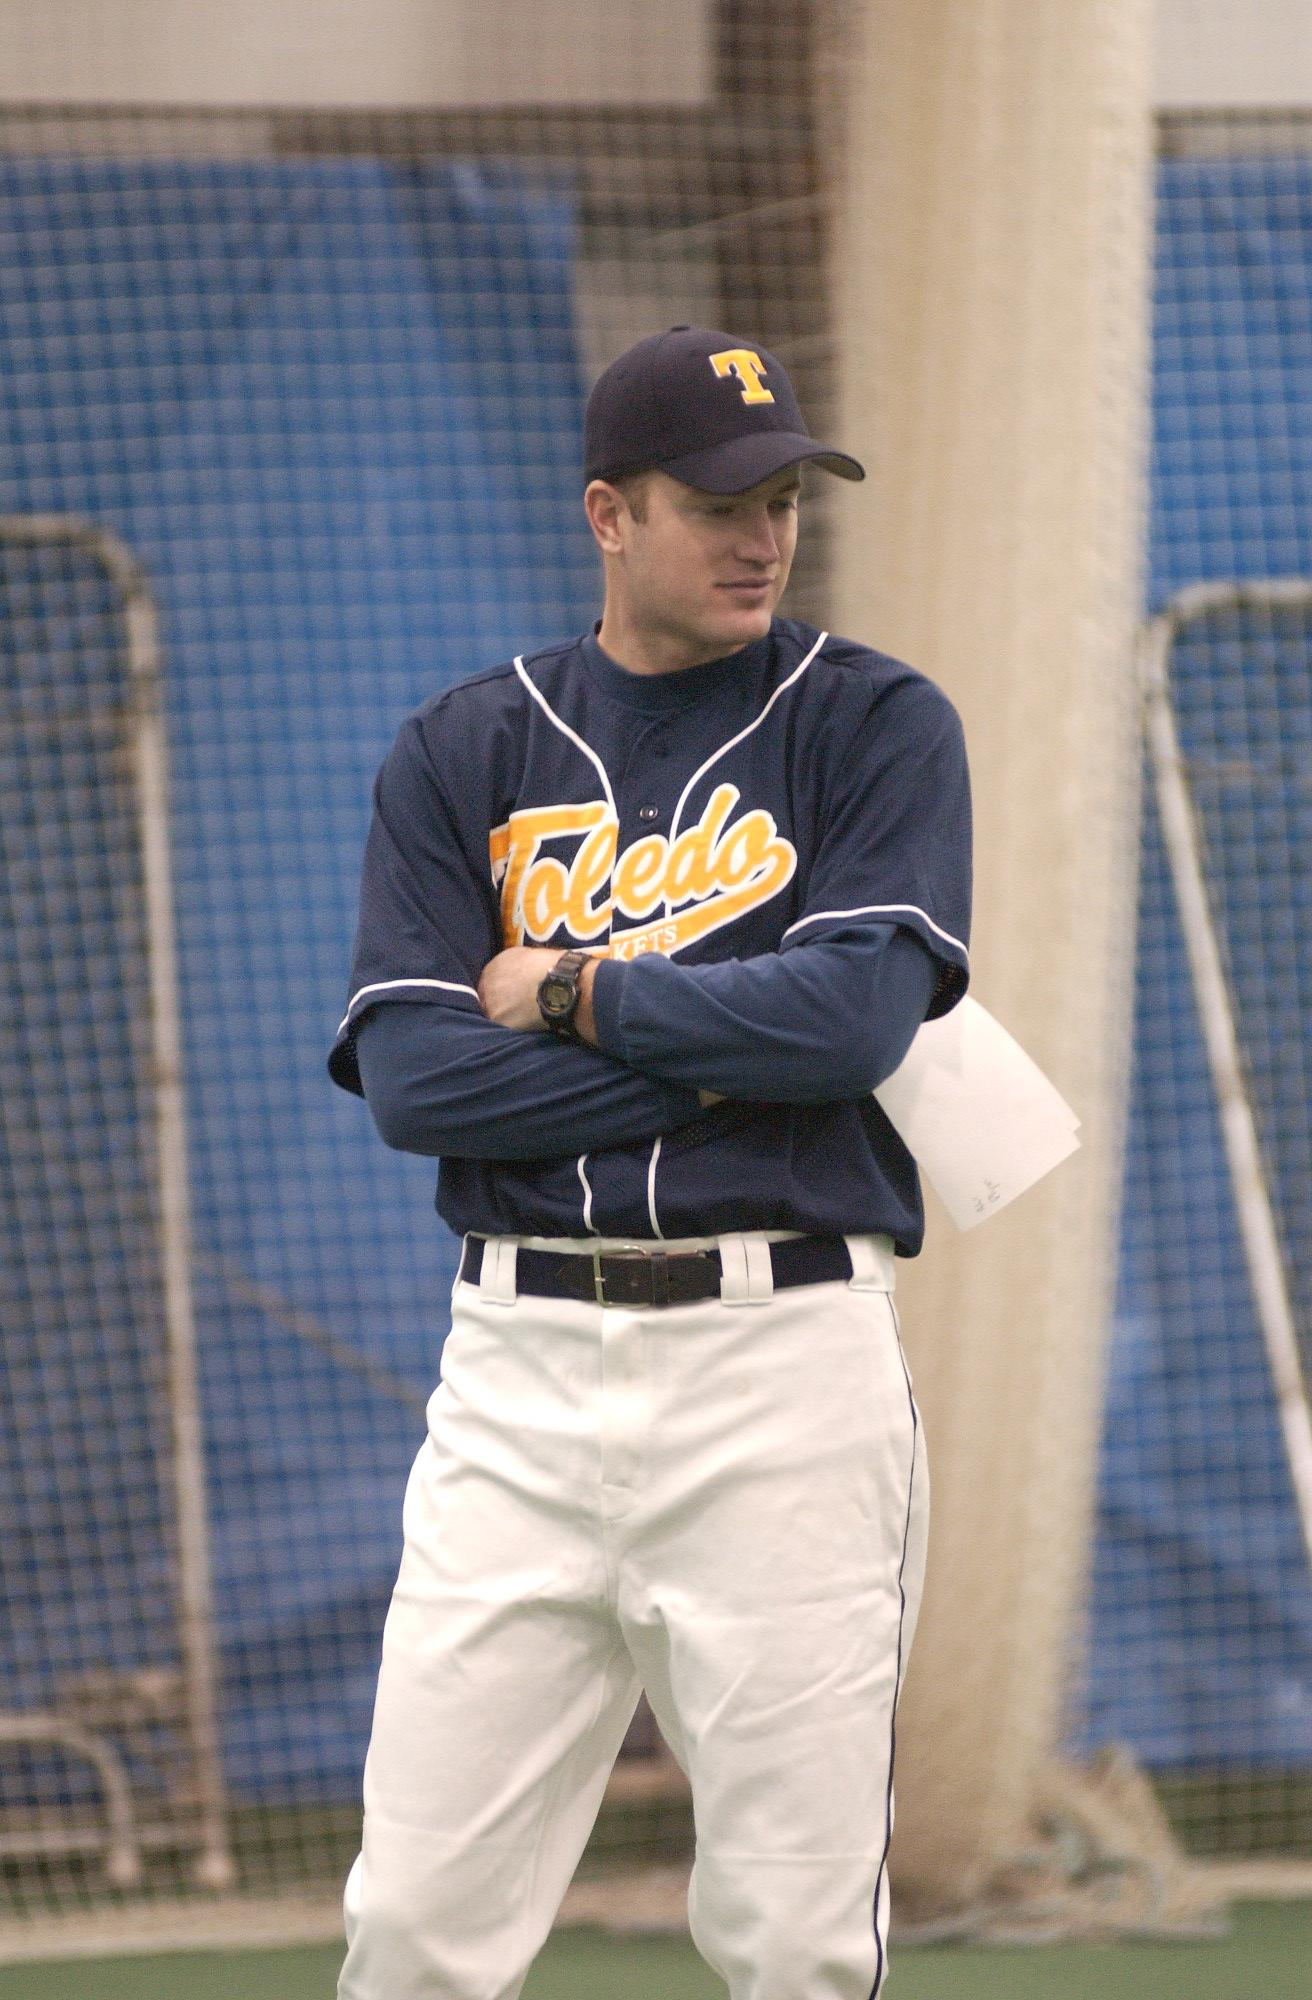 Josh Bradford Named Assistant Coach Former Rocket Volunteer Assistant Will Serve As Pitching Coach And Recruiting Coordinator University Of Toledo Athletics